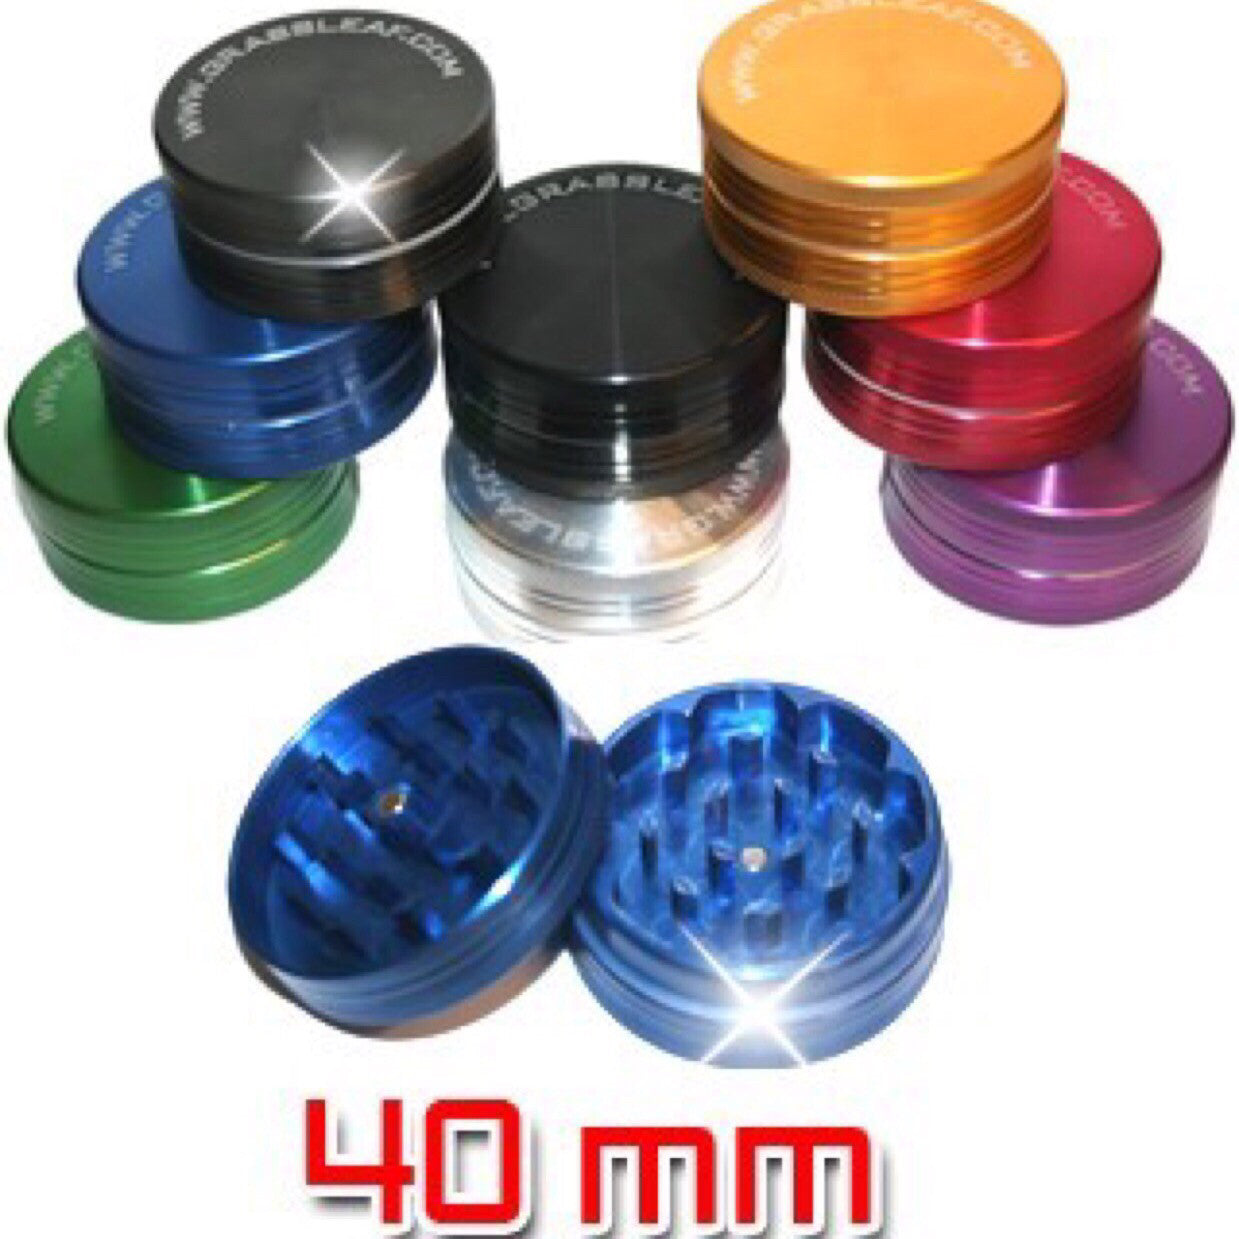 2 PART GRINDER 40MM PURPLE